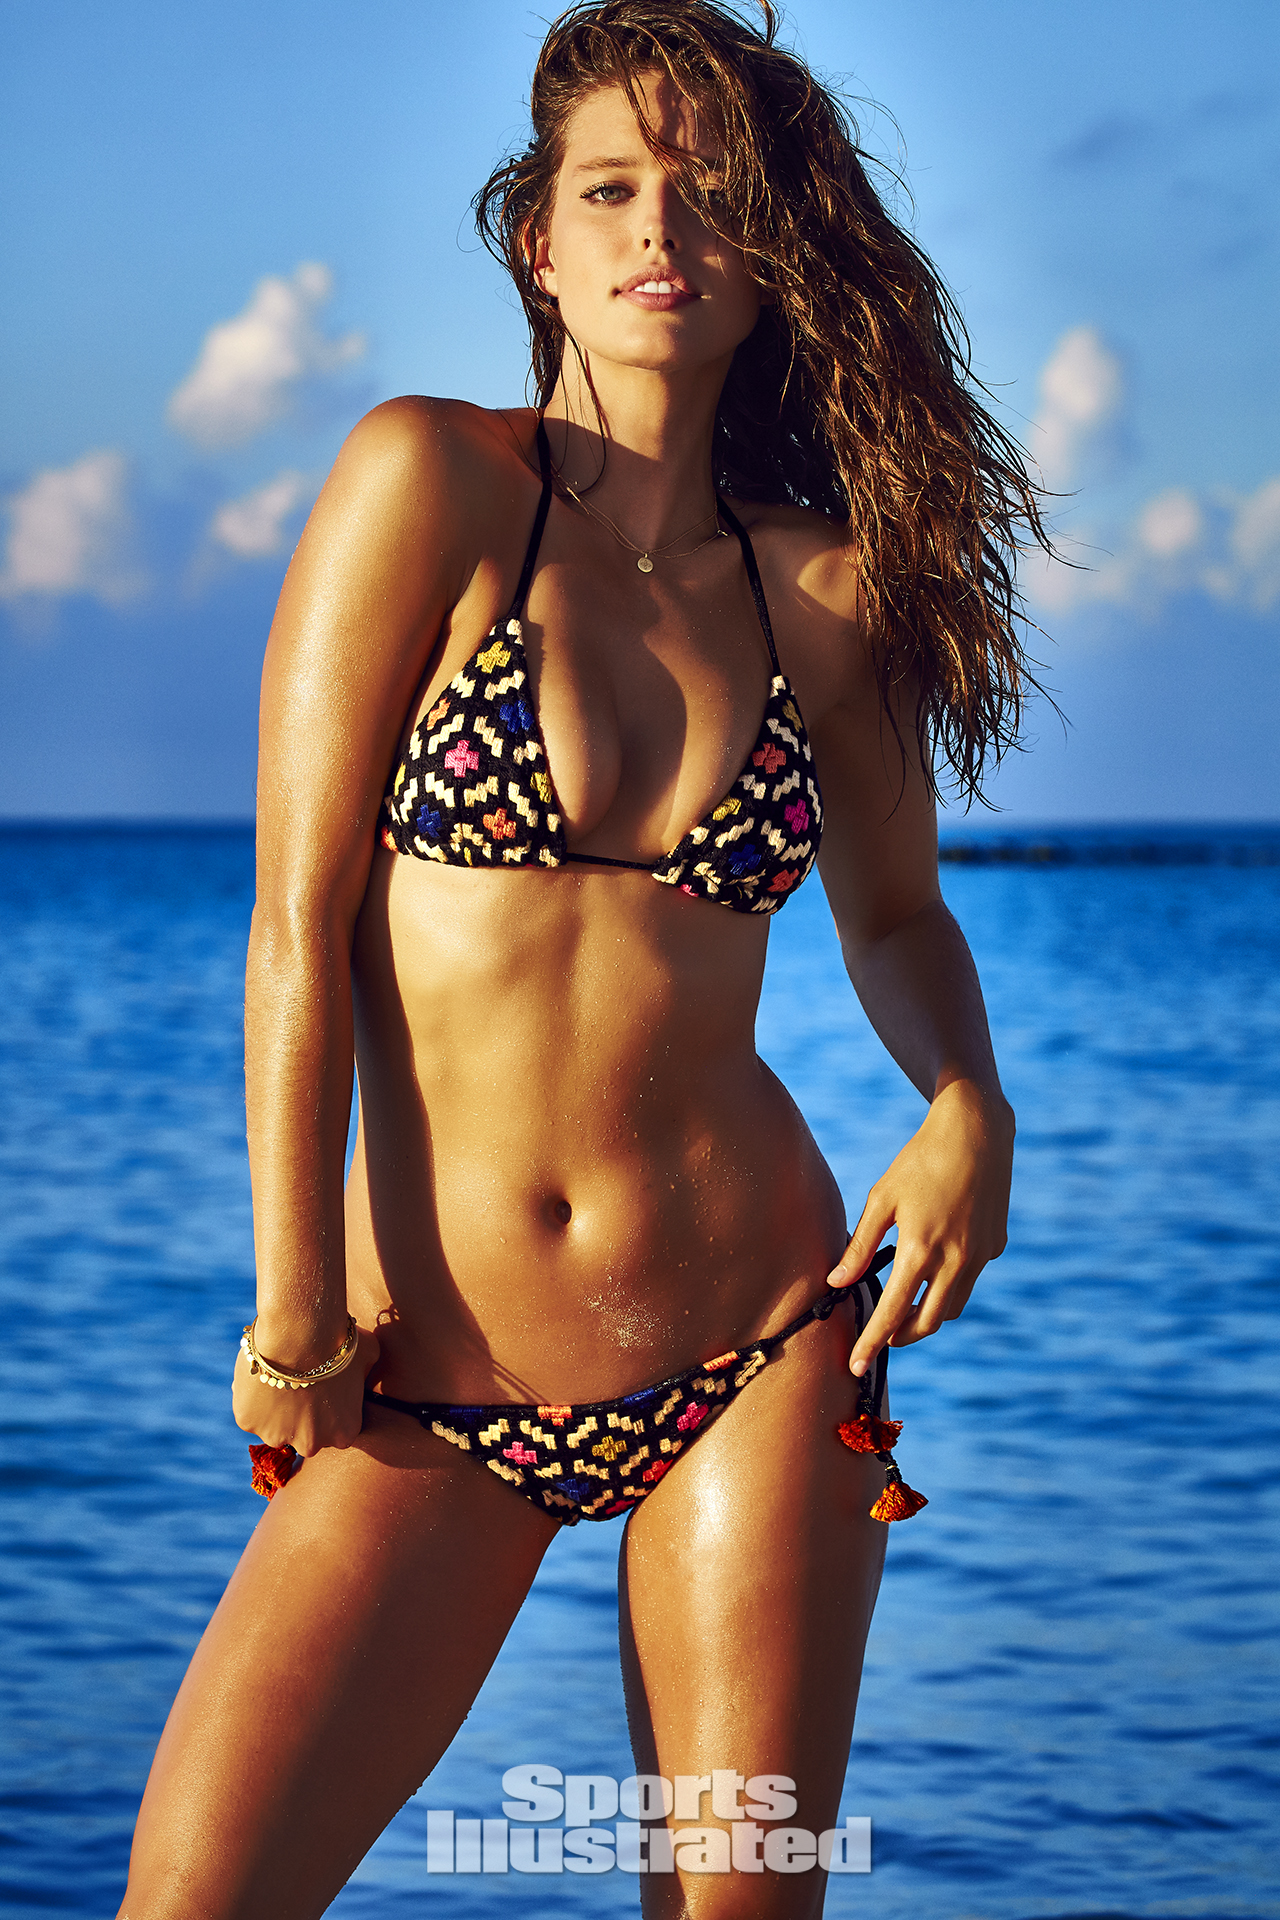 Emily DiDonato was photographed by James Macari in Turks & Caicos. Swimsuit by Salinas.